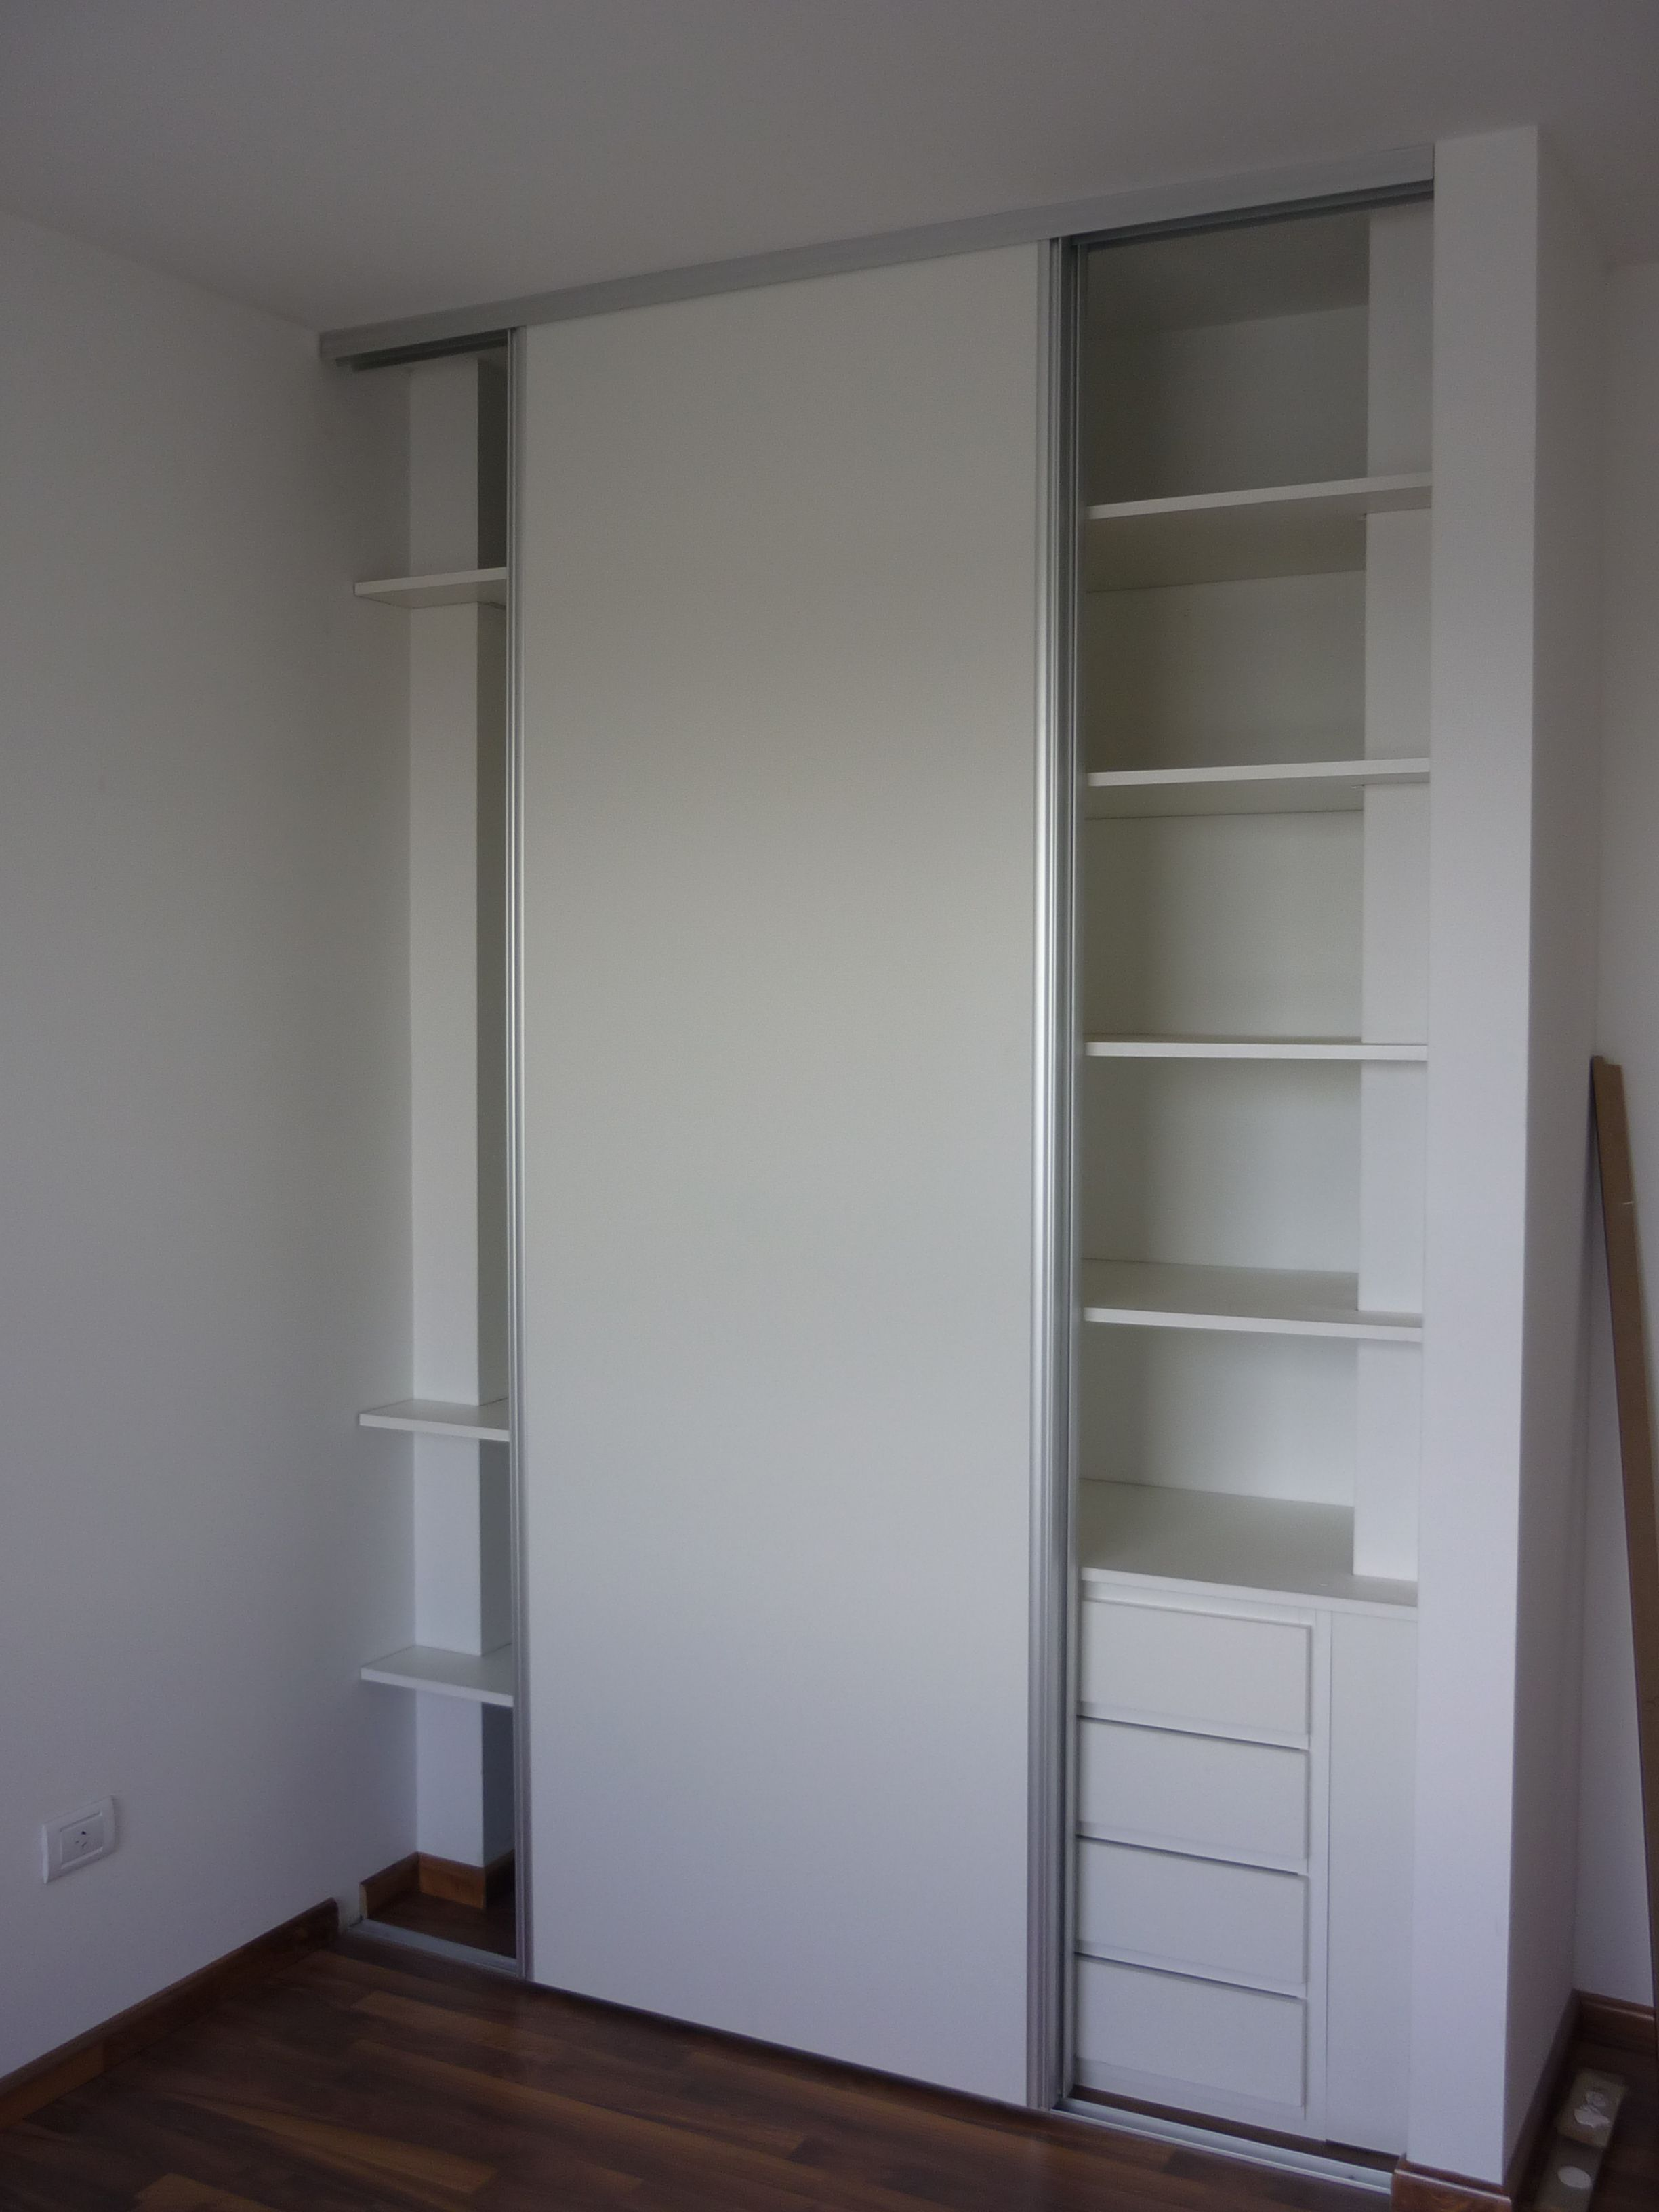 interior de placard opciones para decorar closet